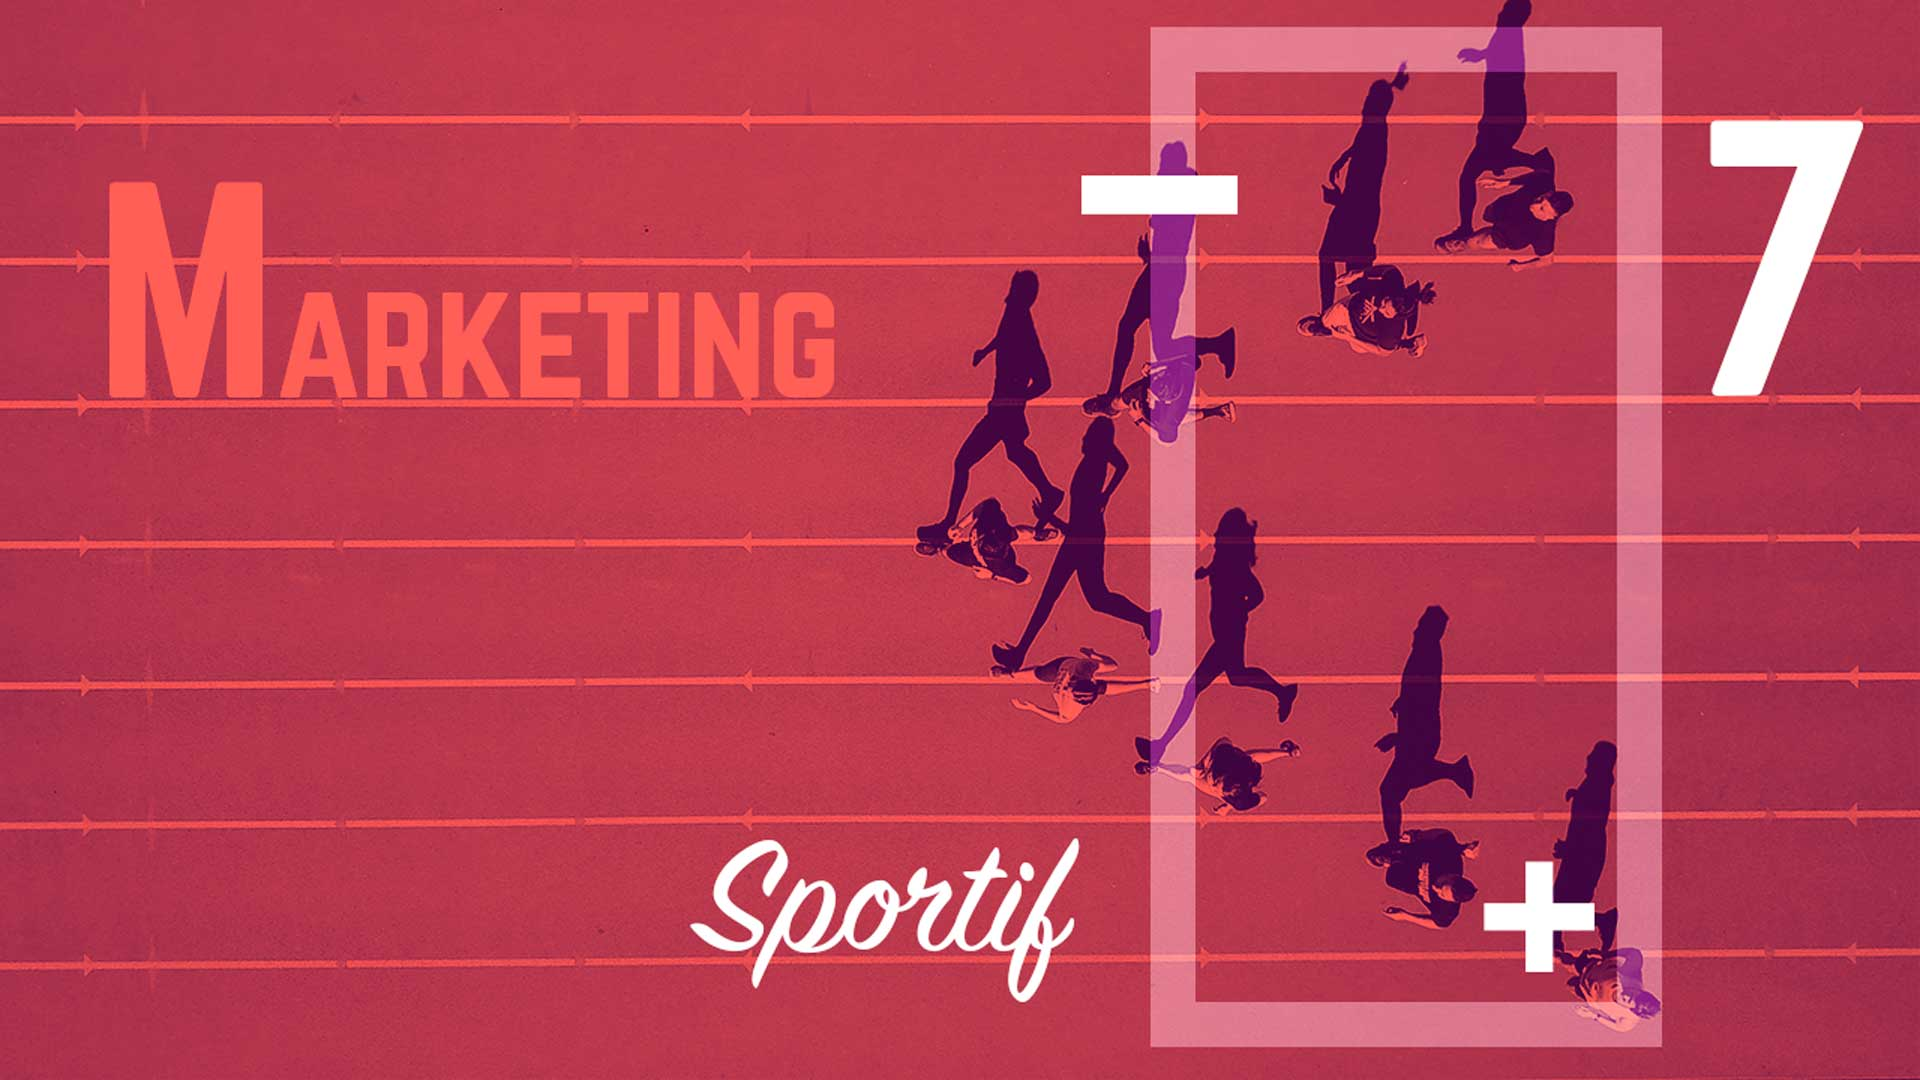 Marketing sportif et agences de communication à Lyon